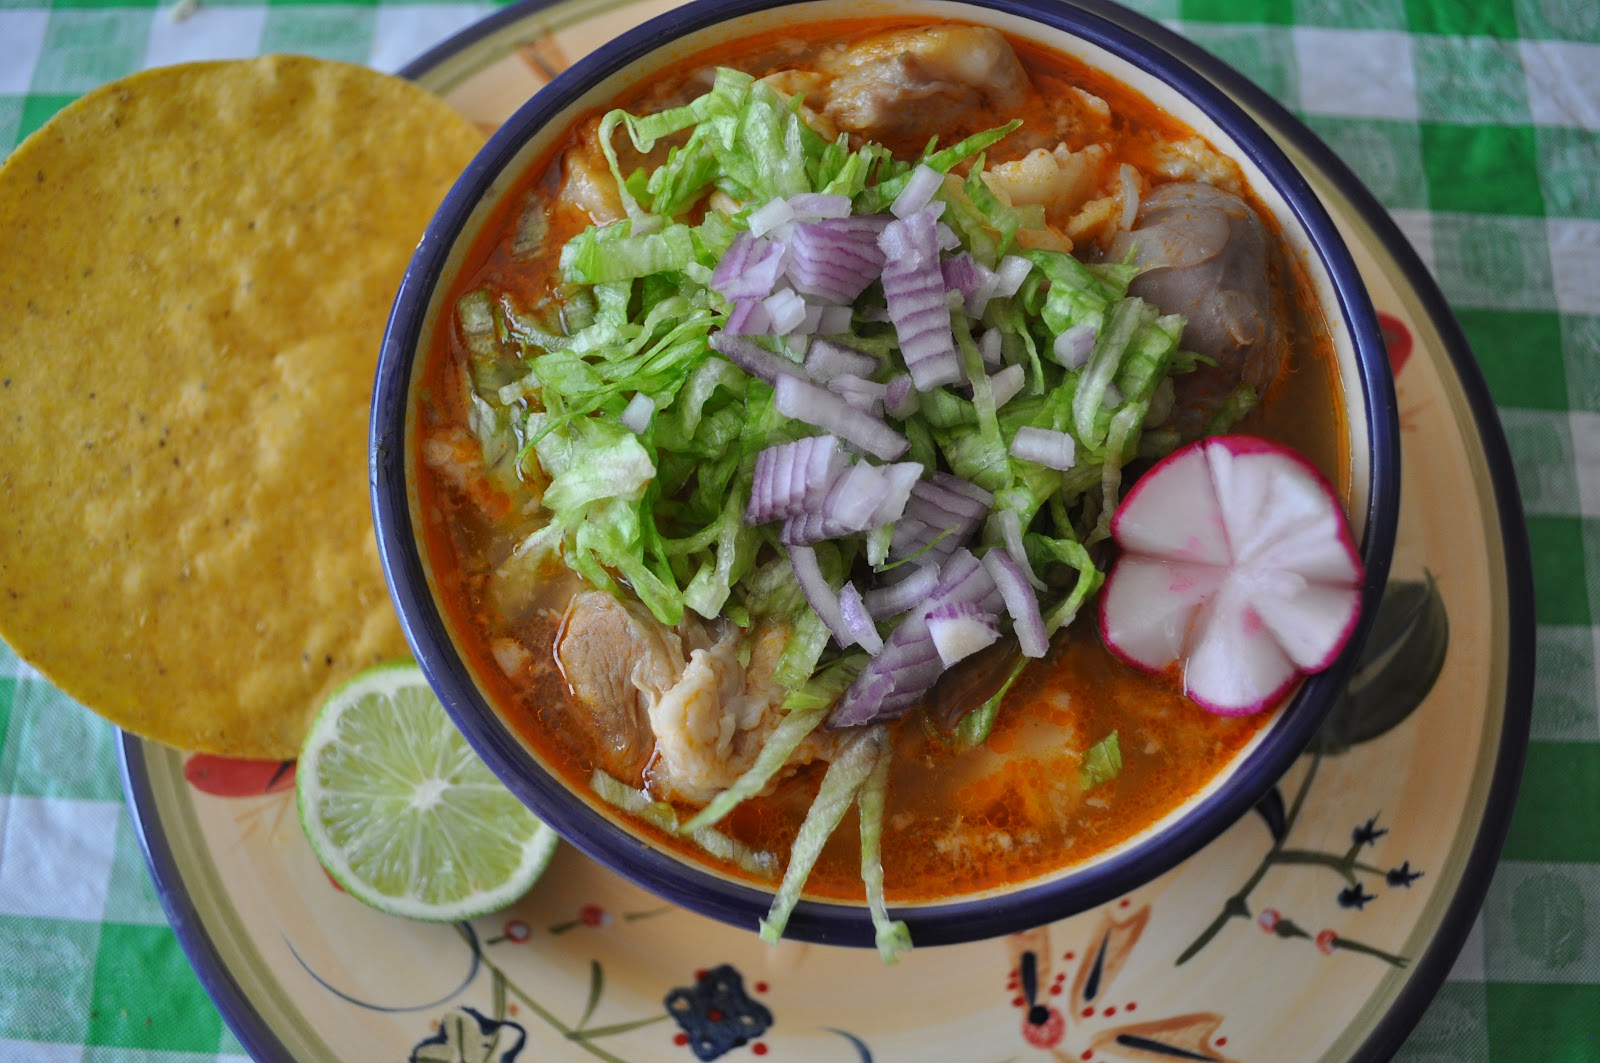 As with most Mexican dishes, you can make this soup more or less spicy ...